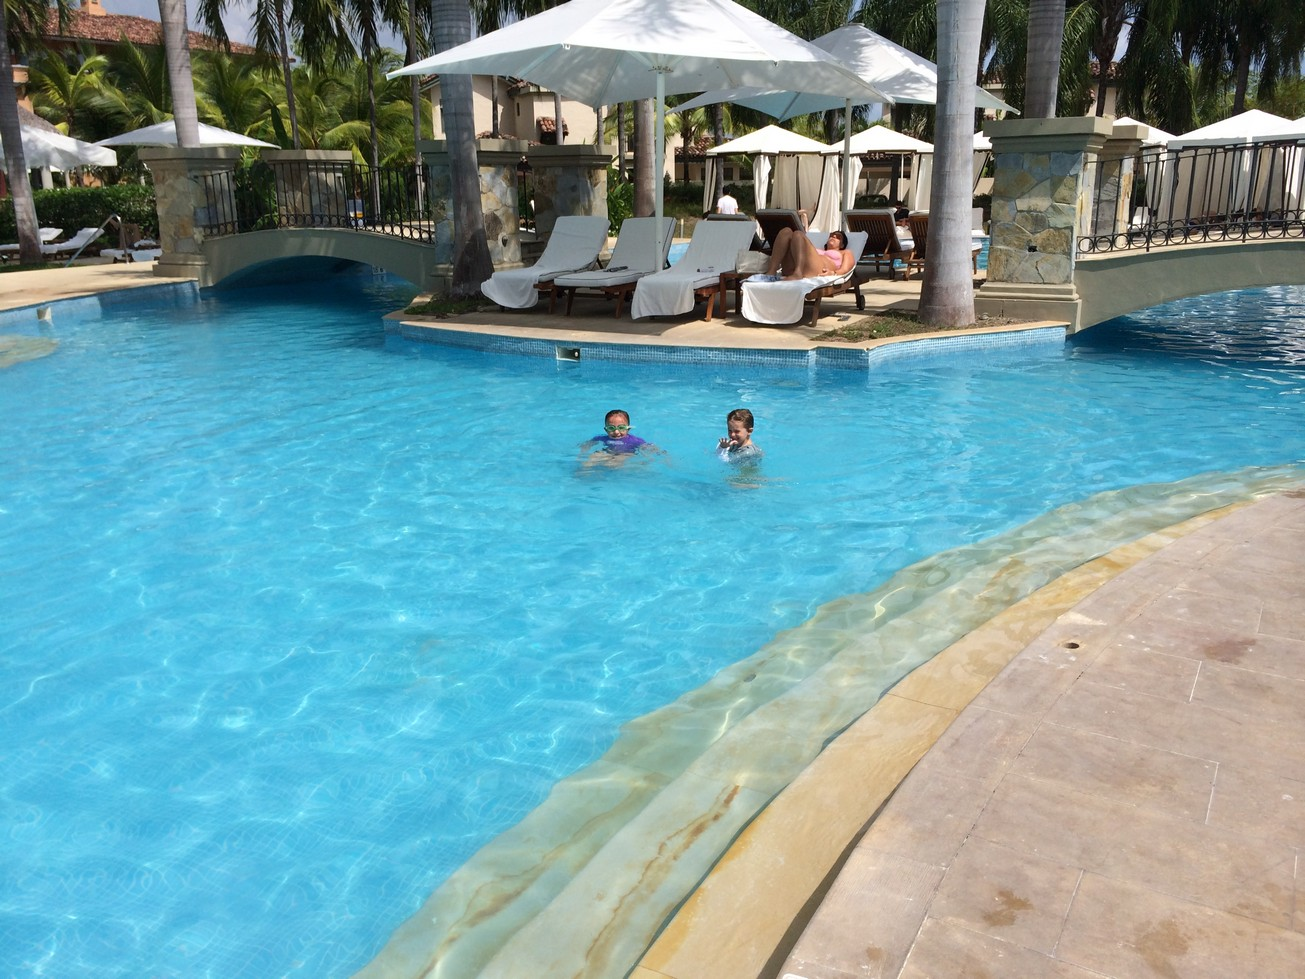 We all loved the pools and hardly left them during our stay.